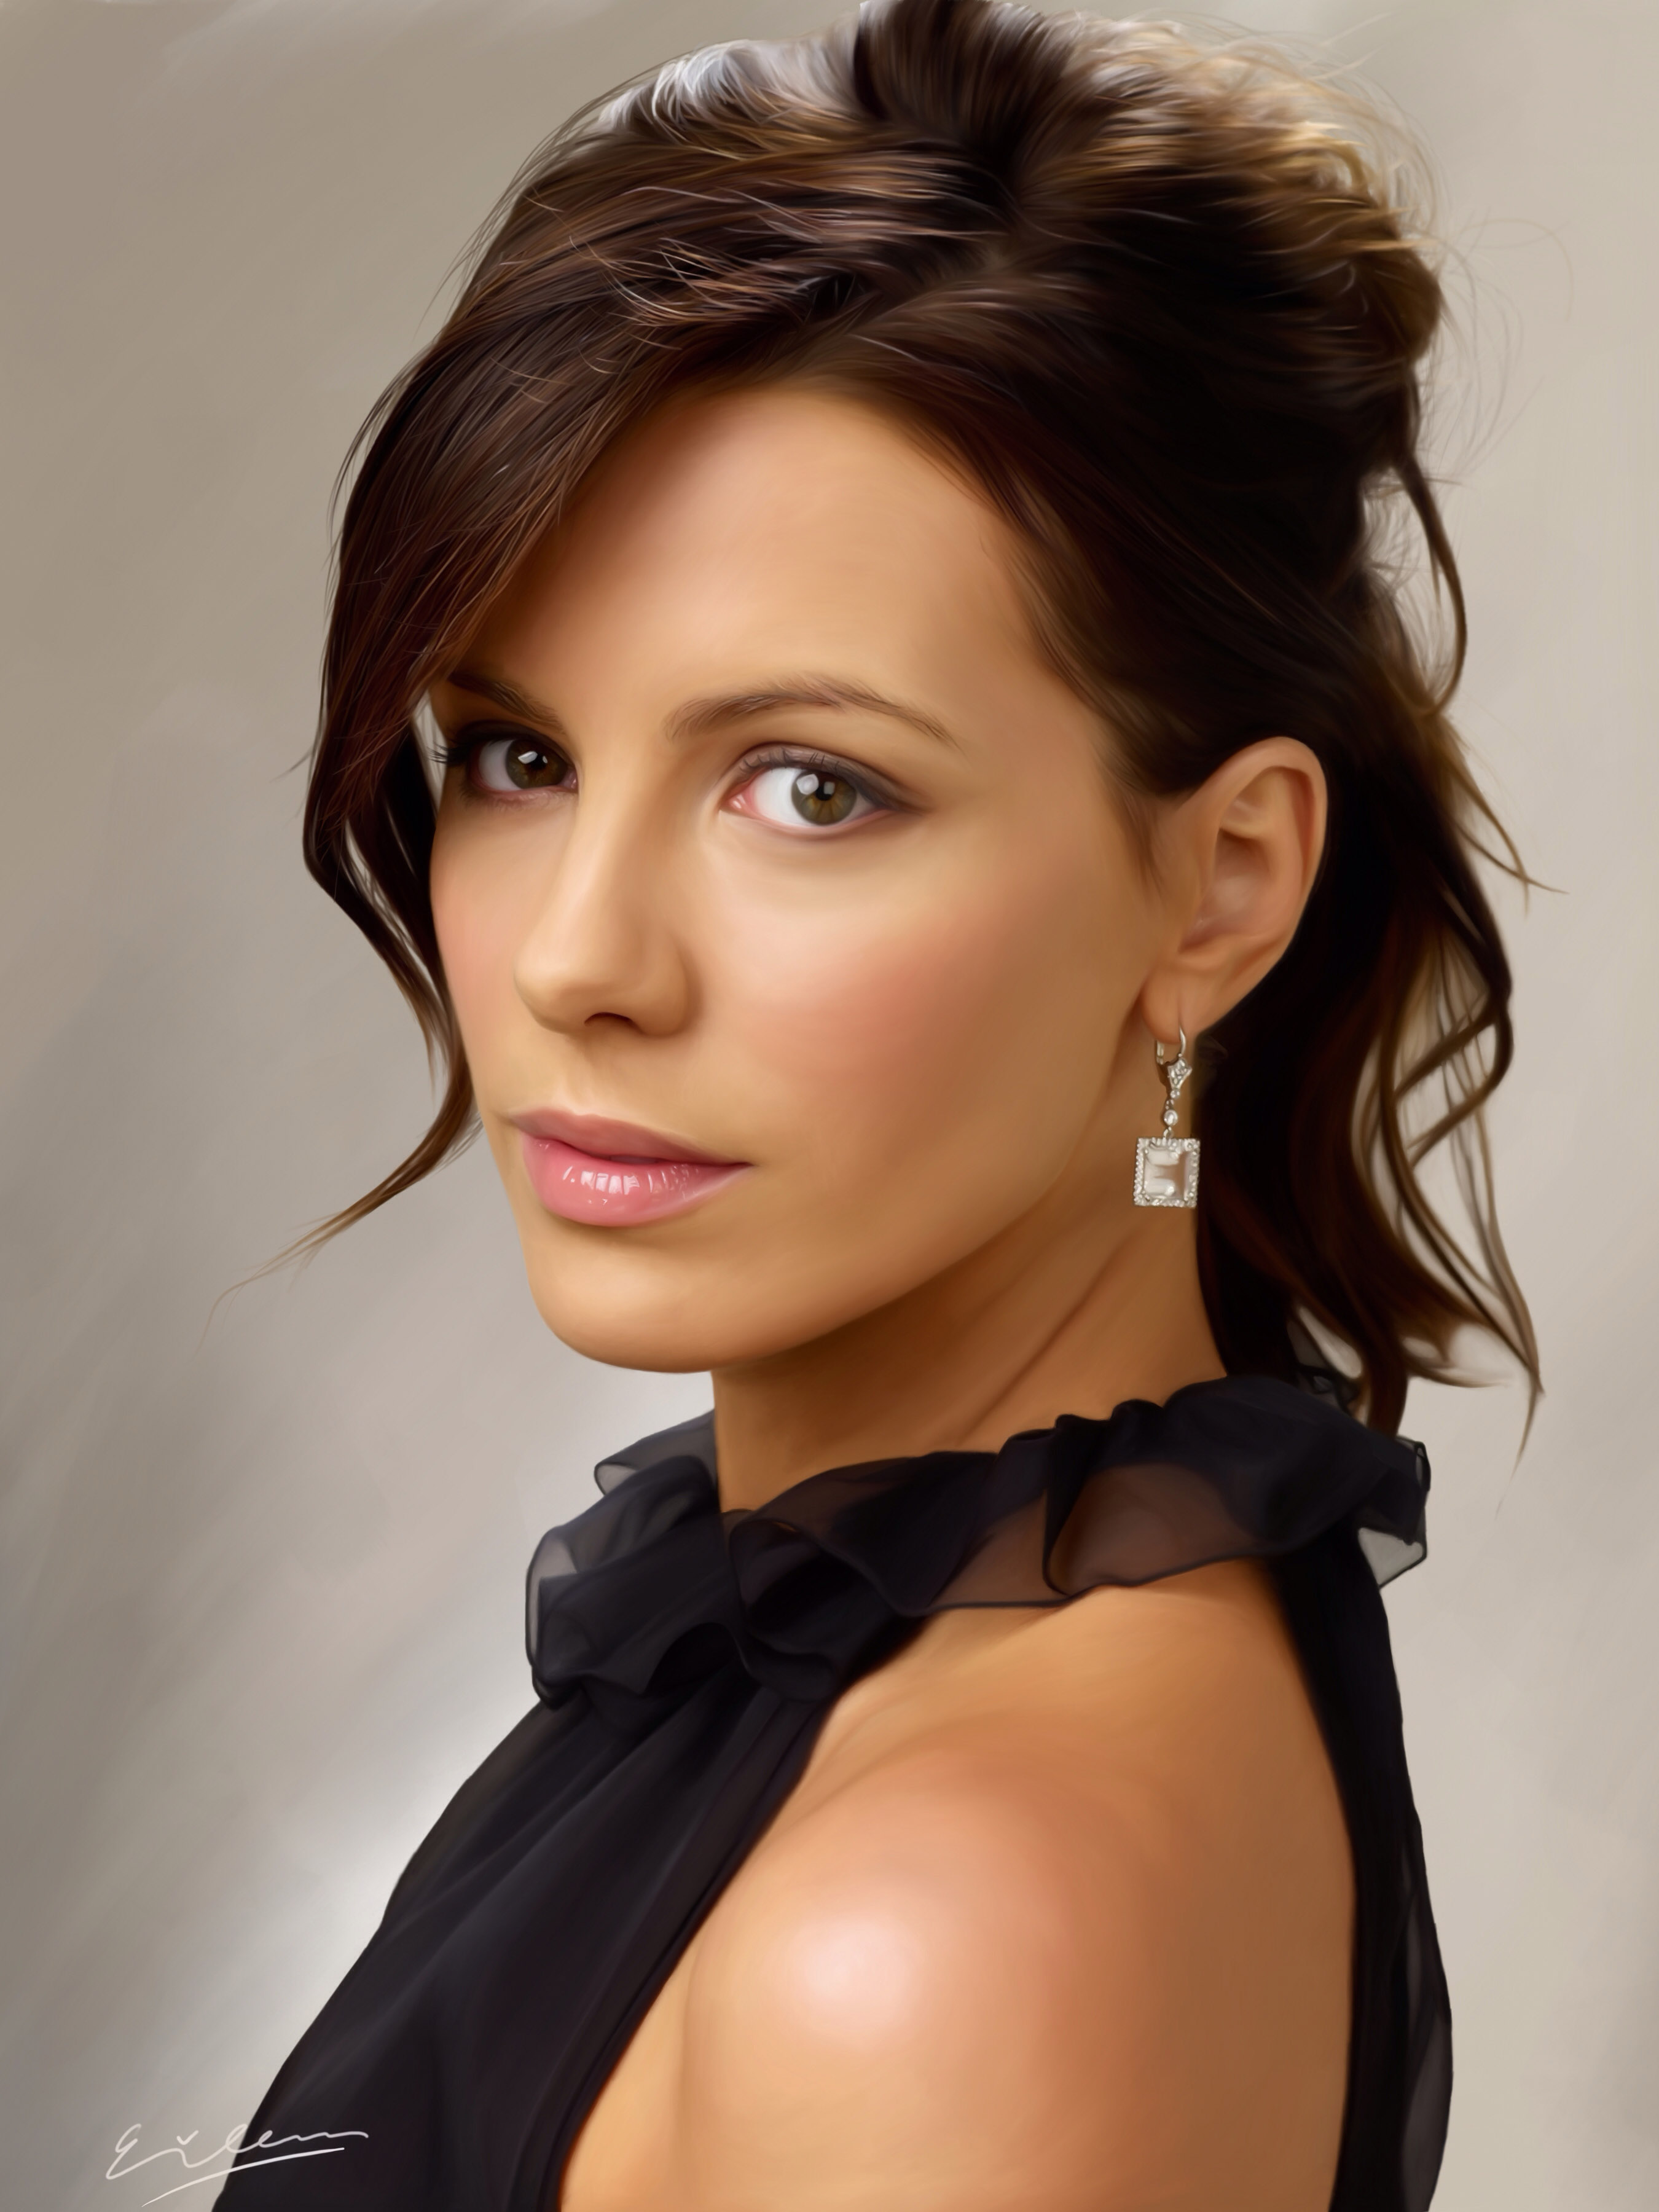 Airbrushed and Idealized Young Kate Beckinsale as LADY LIBERTY - Magic Painting by Eileen Irma - There is NOTHING WRONG with this picture. This is an idealized beautiful and confident young woman dressing as she pleases. Note the brown hair and brown eyes and exposed shoulder.